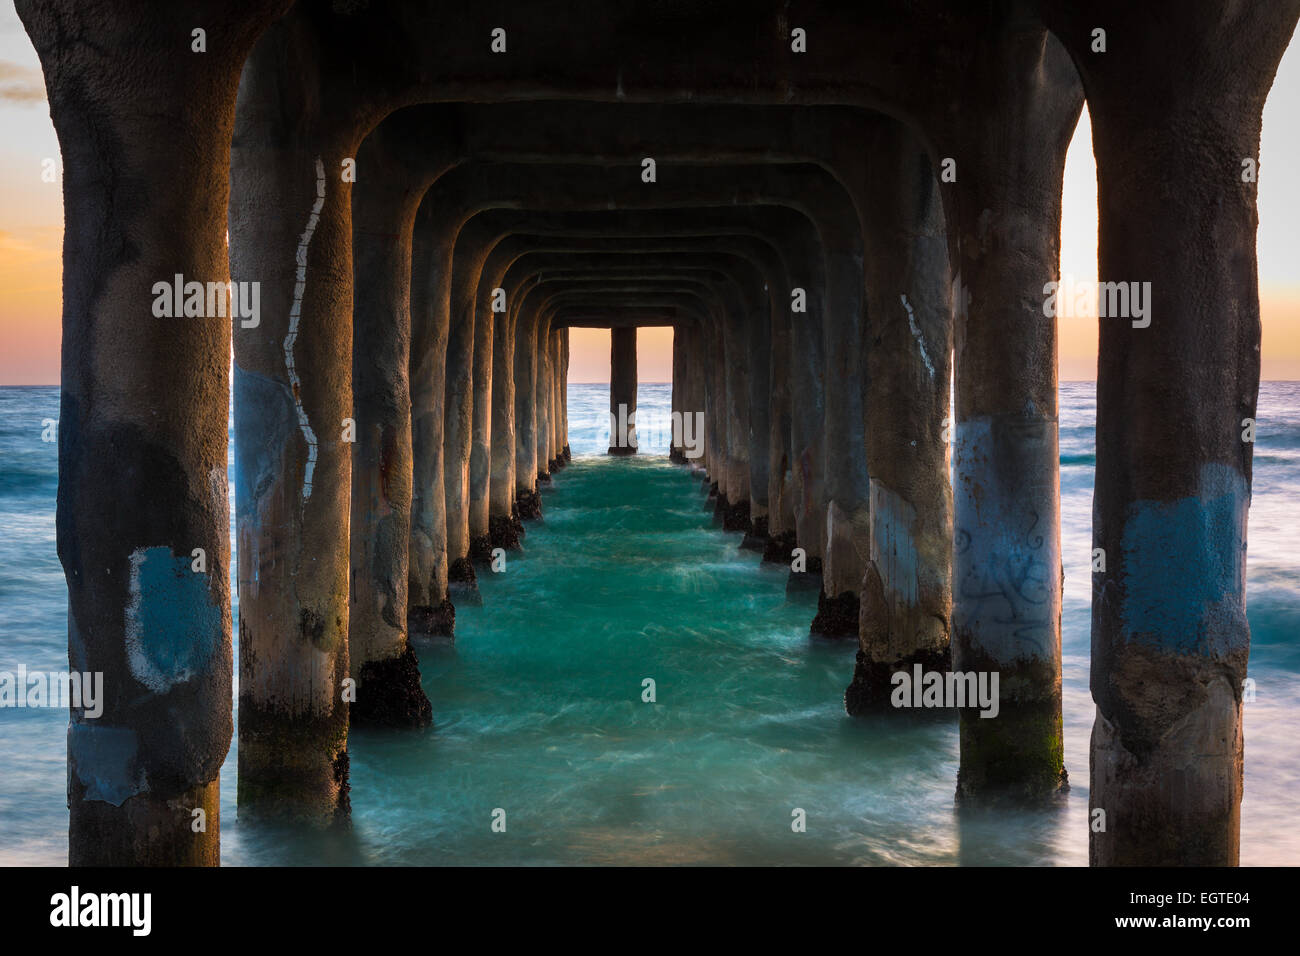 The Manhattan Beach Pier is a pier located in Manhattan Beach, California, on the coast of the Pacific Ocean. - Stock Image